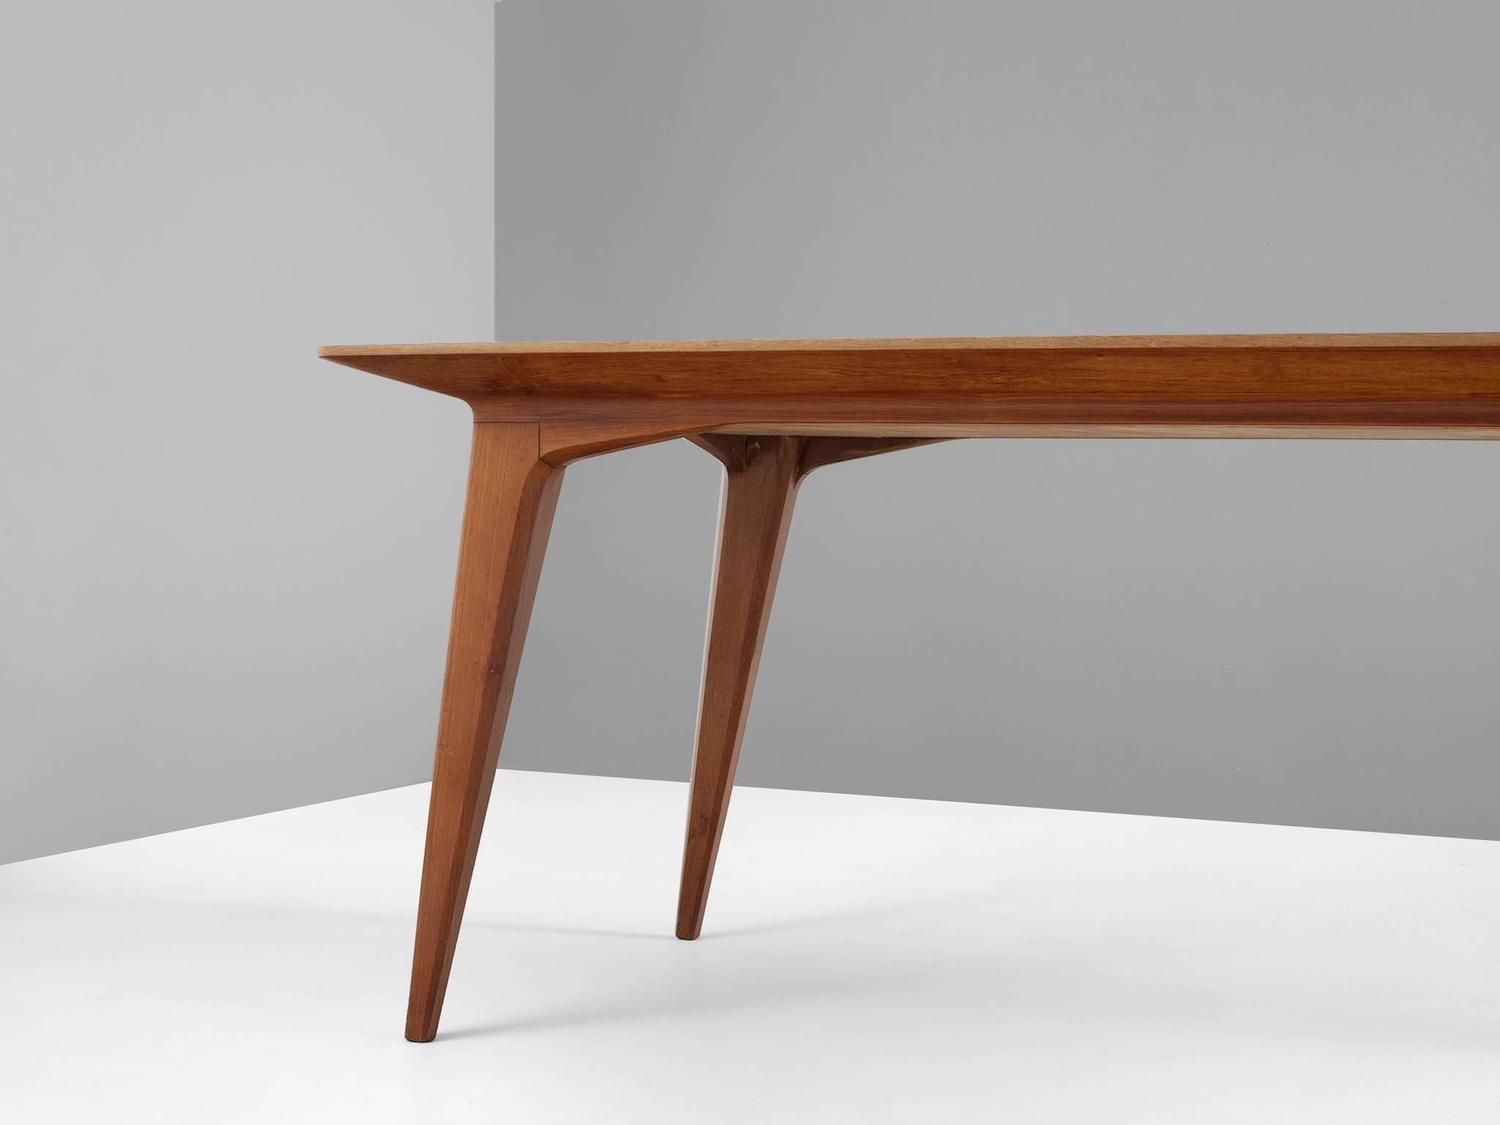 Rectangular Dining Table in Teak For Sale at 1stdibs : 4208item41974z from www.1stdibs.com size 1500 x 1125 jpeg 42kB